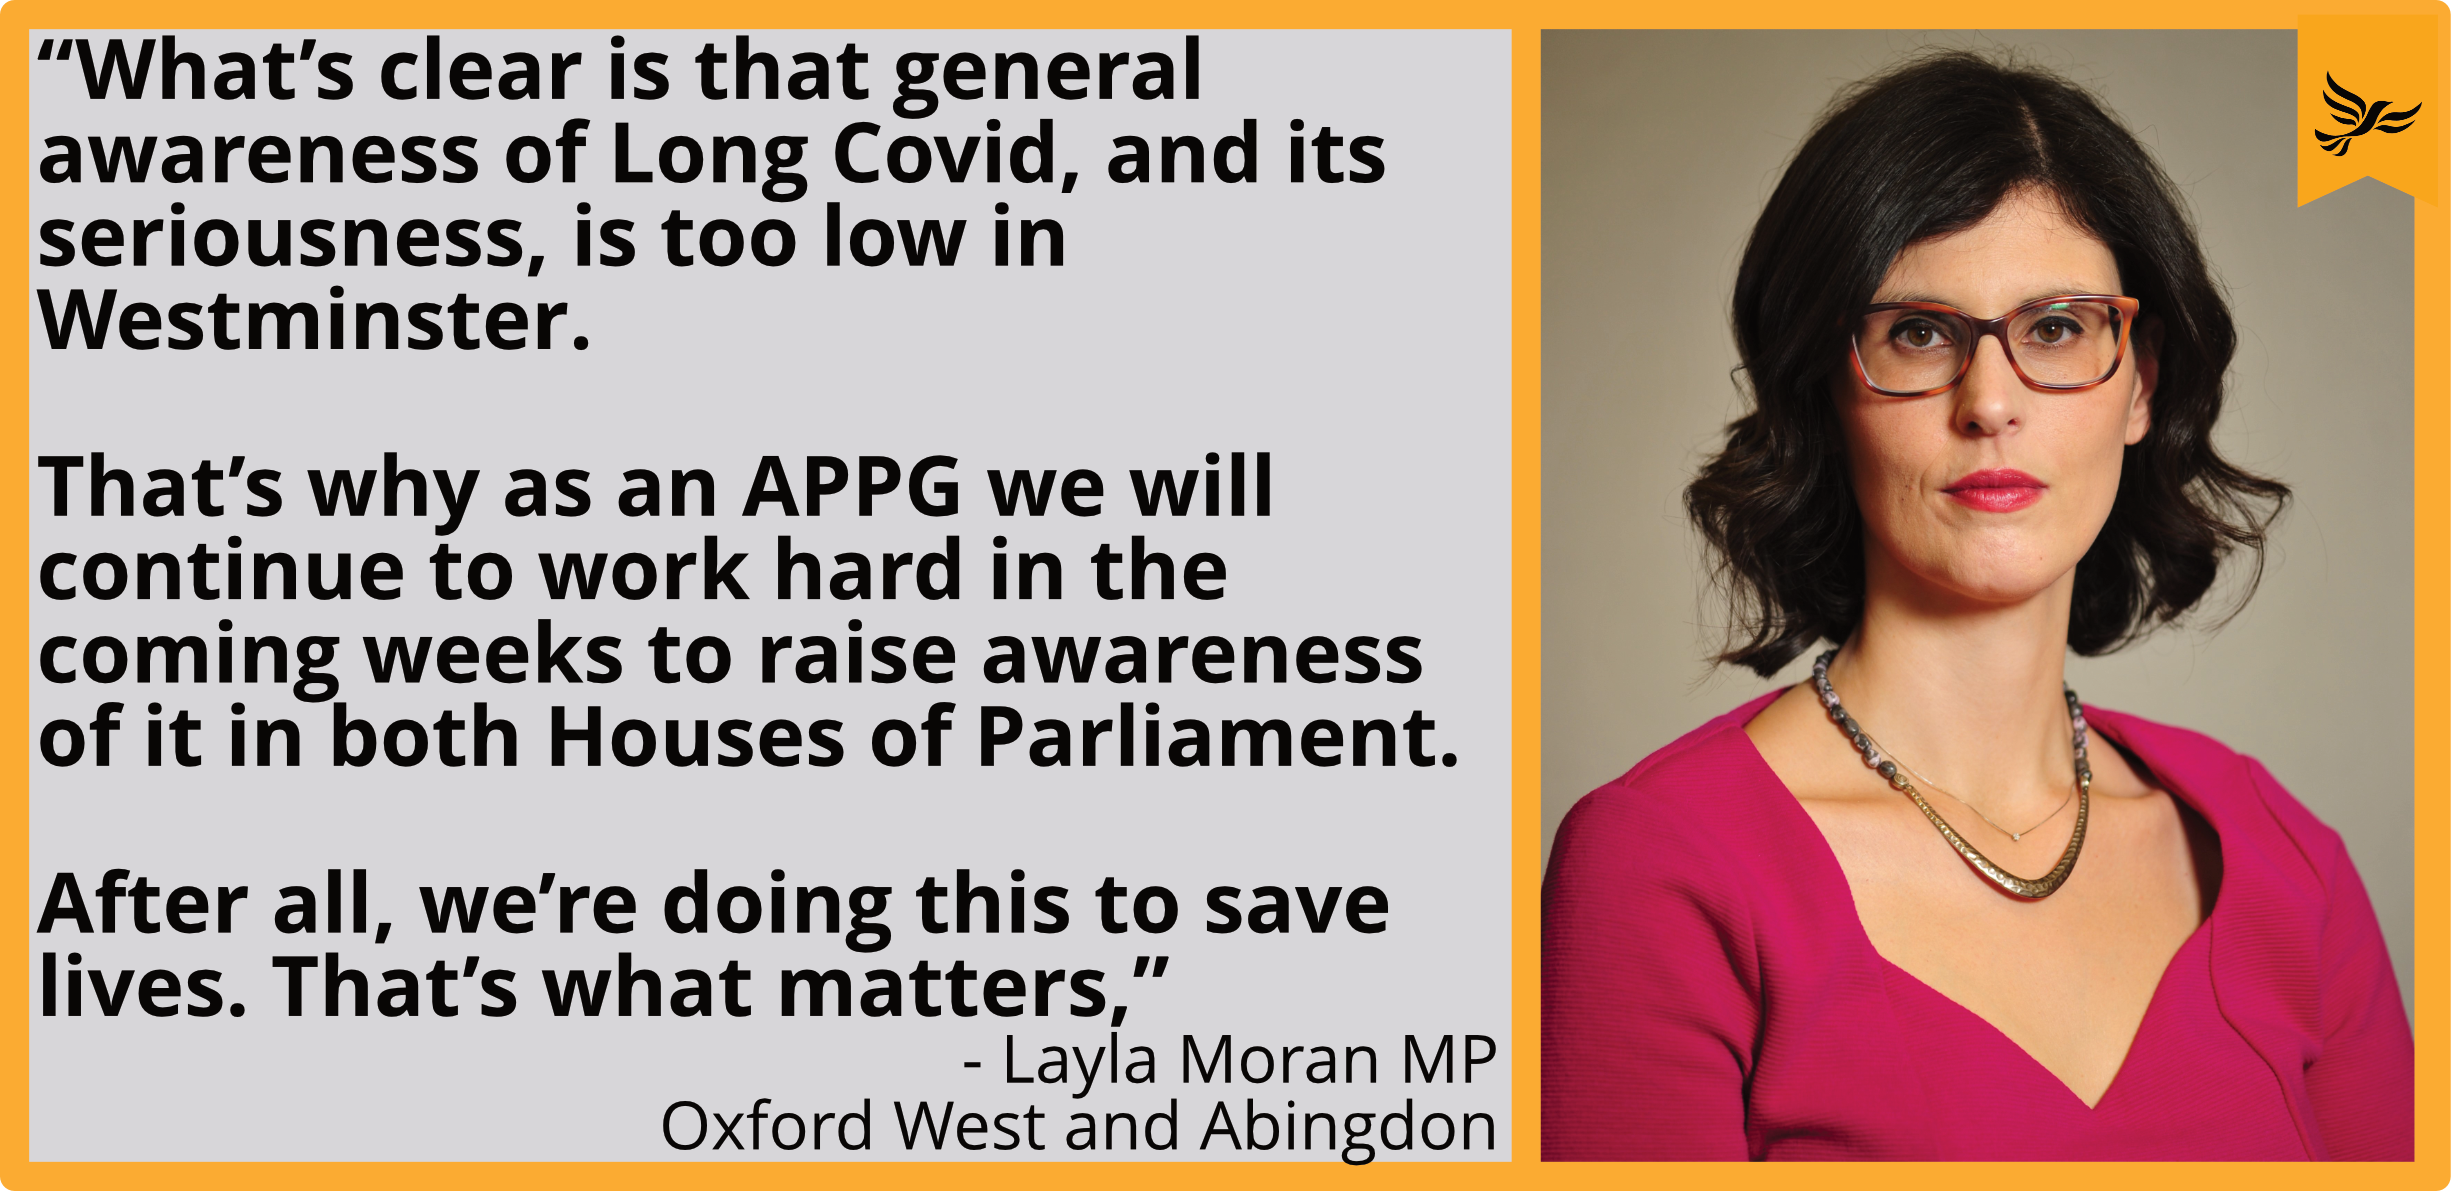 What's clear is that general awareness of Long Covid, and its seriousness, is too low in Westminster. That's why as an APPG we will continue to work hard in the coming weeks to raise awareness of it in both Houses of Parliament. After all, we're doing this to save lives. That's what matters,""